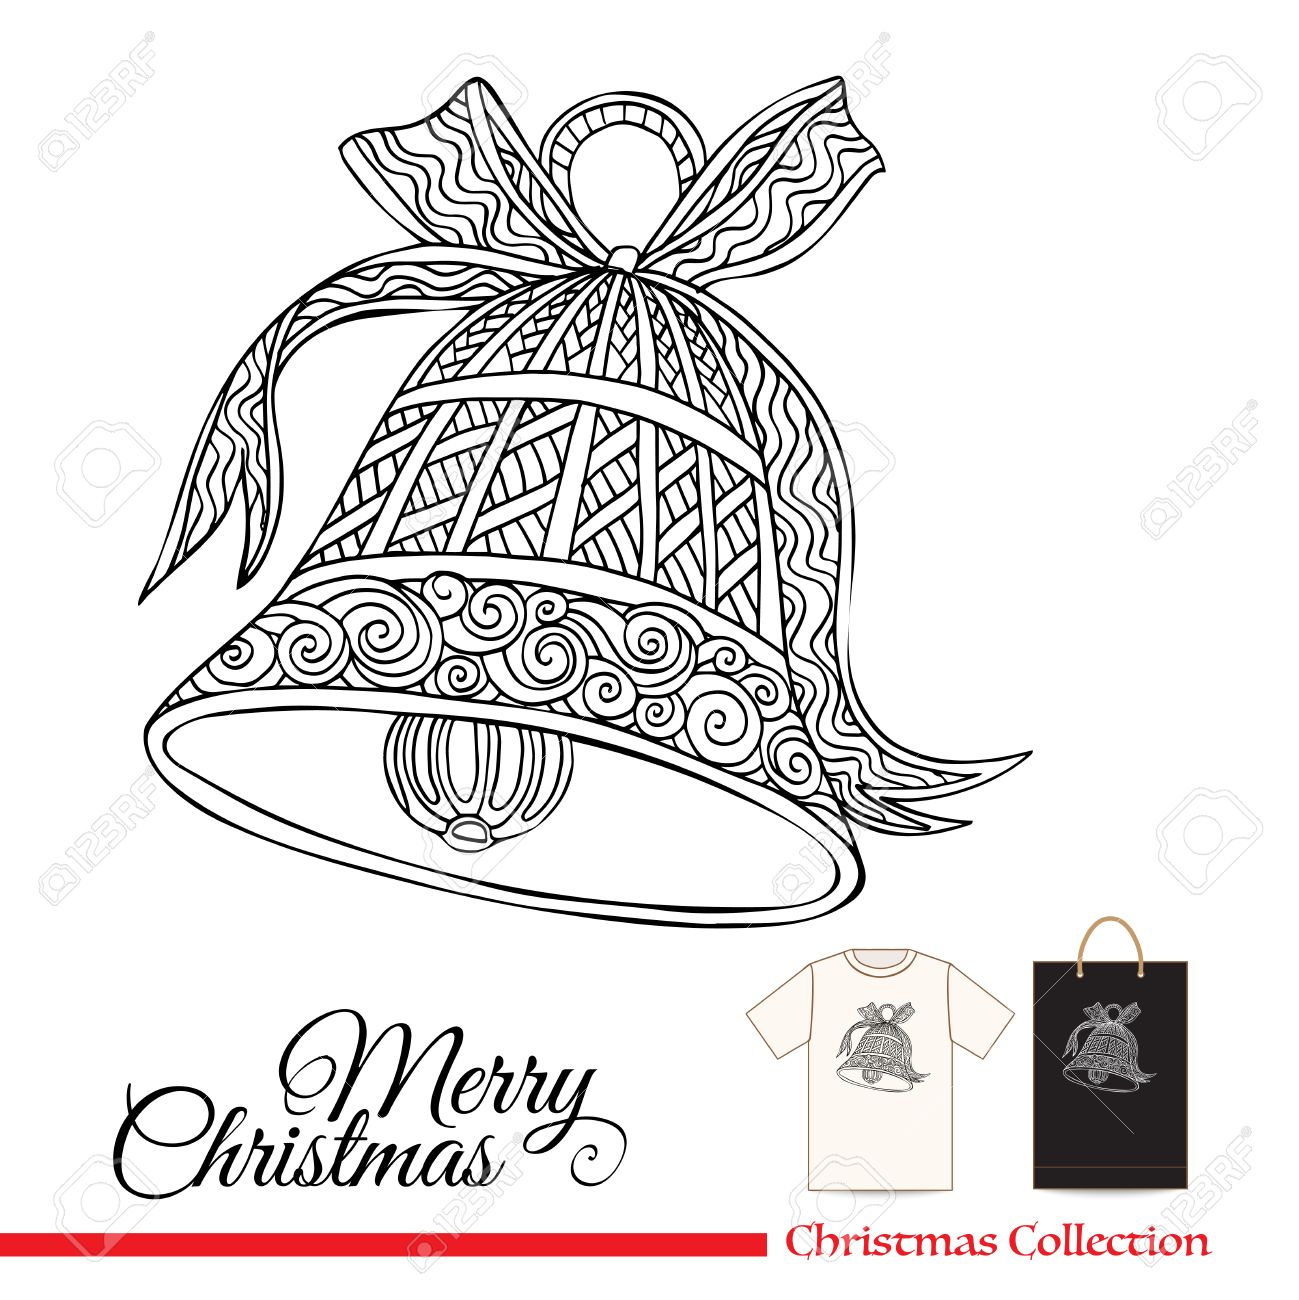 1299x1300 T Shirt Design Or Plastic Or Paper Bag Design With Christmas